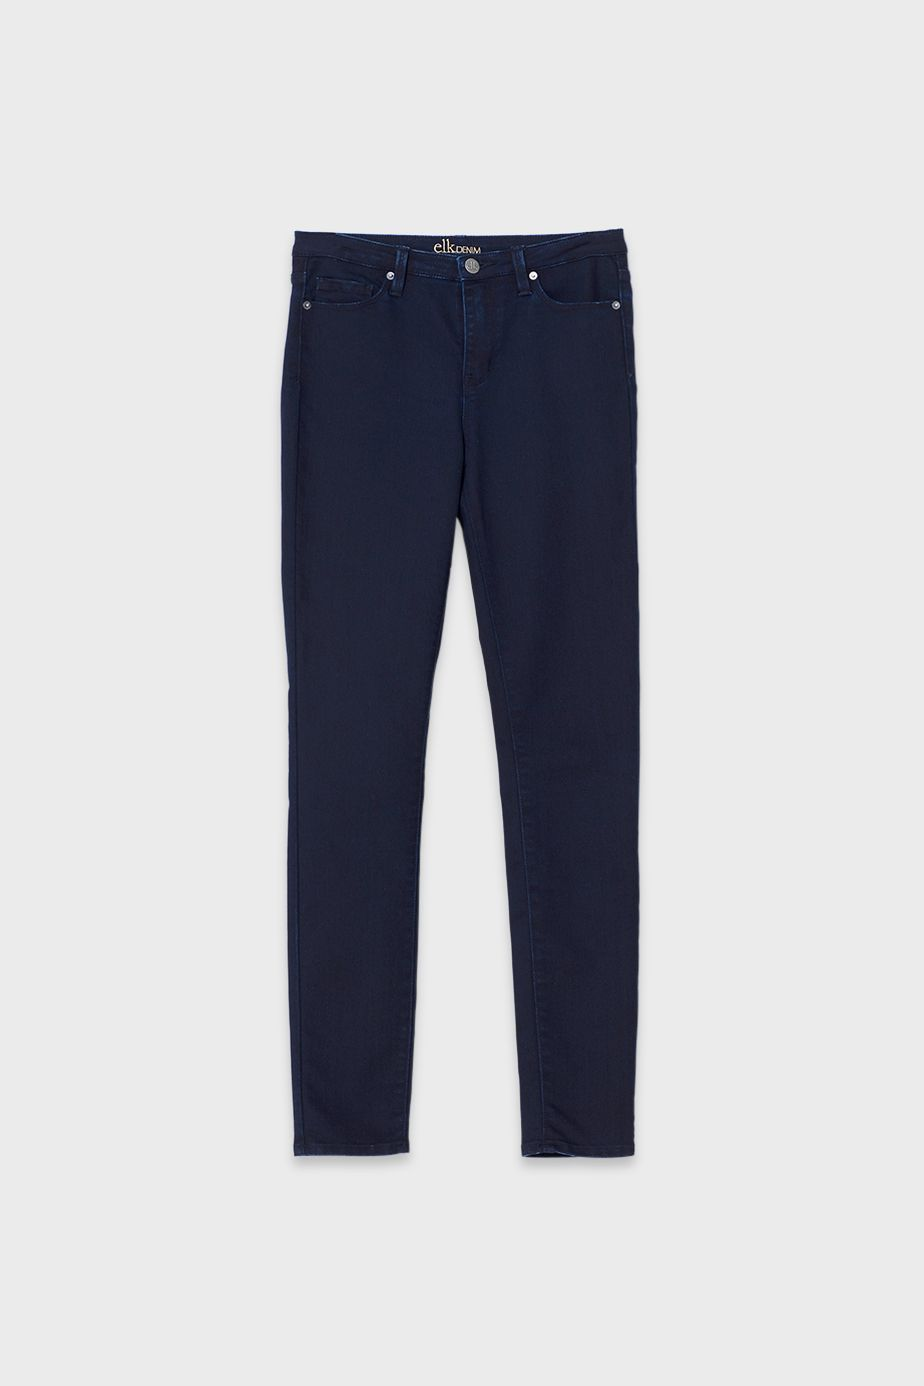 ELK THE LABEL Oslo Jean | deep Indigo